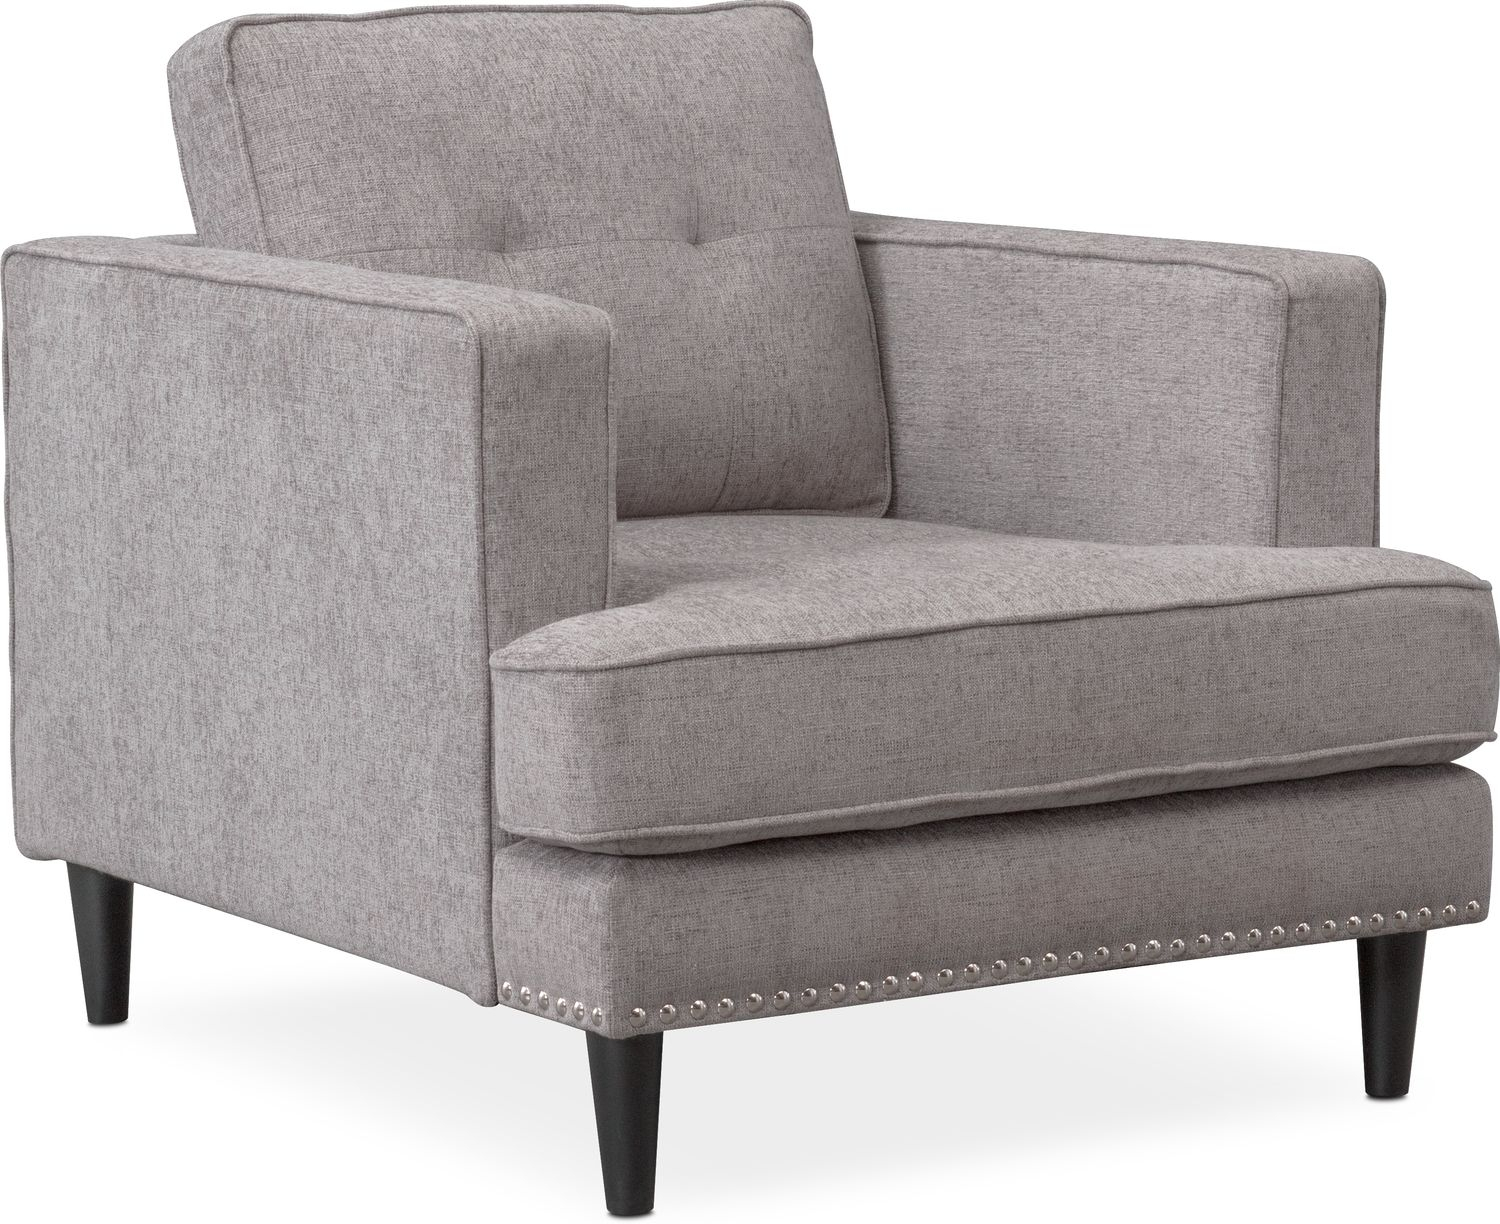 Parker Sofa, Chair And Ottoman Set | Value City Furniture And Mattresses Throughout Parker Sofa Chairs (Image 21 of 25)